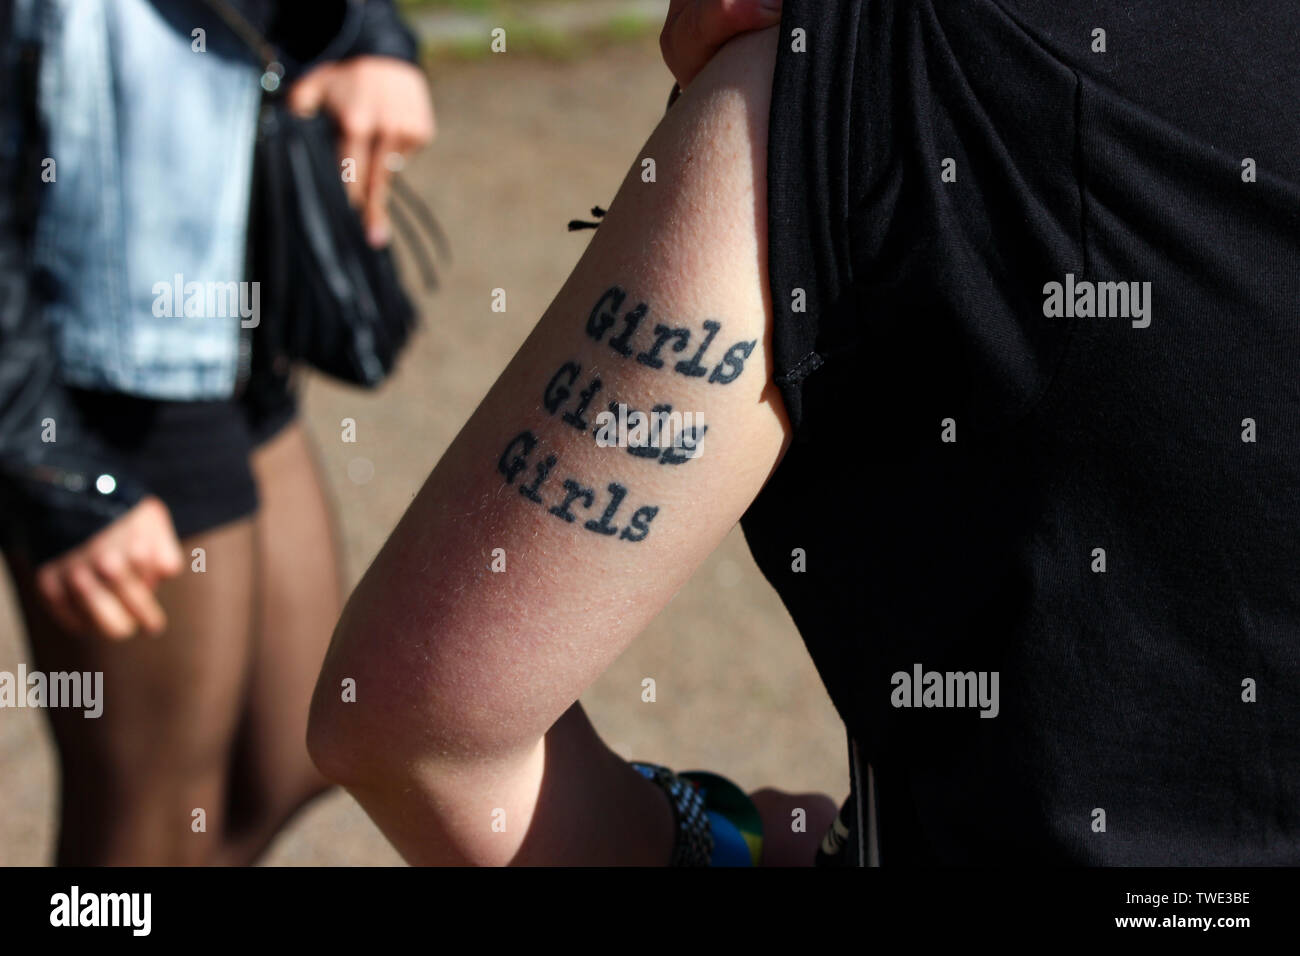 e20468f815927 Tattooed arm of a young female at Helsinki Pride Parade 2015 after-party in  Kaivopuisto